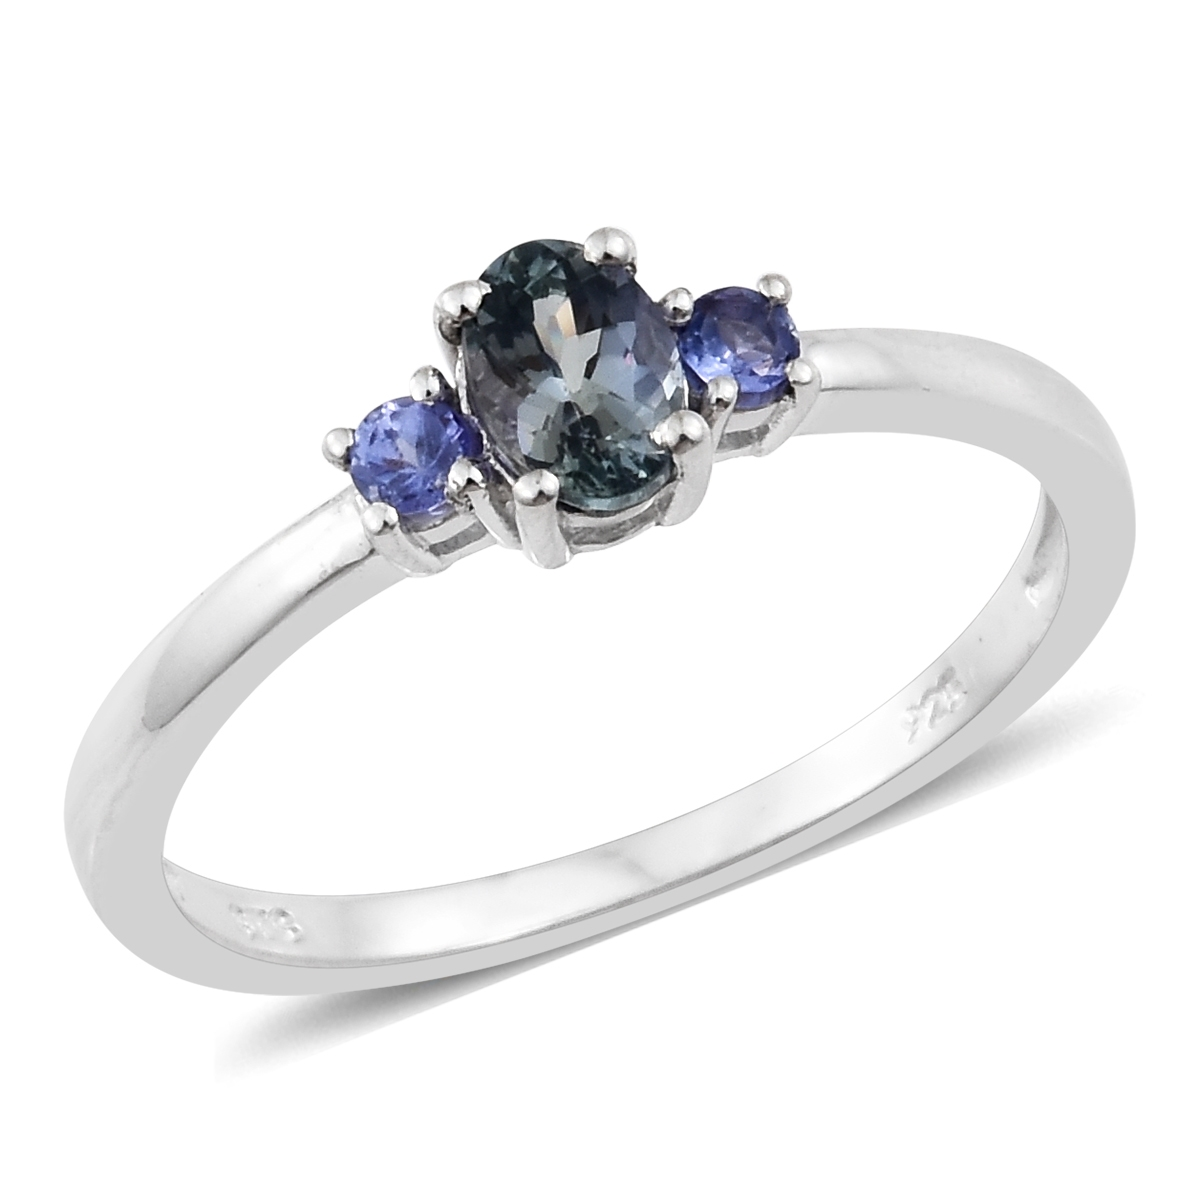 ring tanzanite sterling fashion jewelry silver p tgw peacock over store online rings platinum quartz size cts